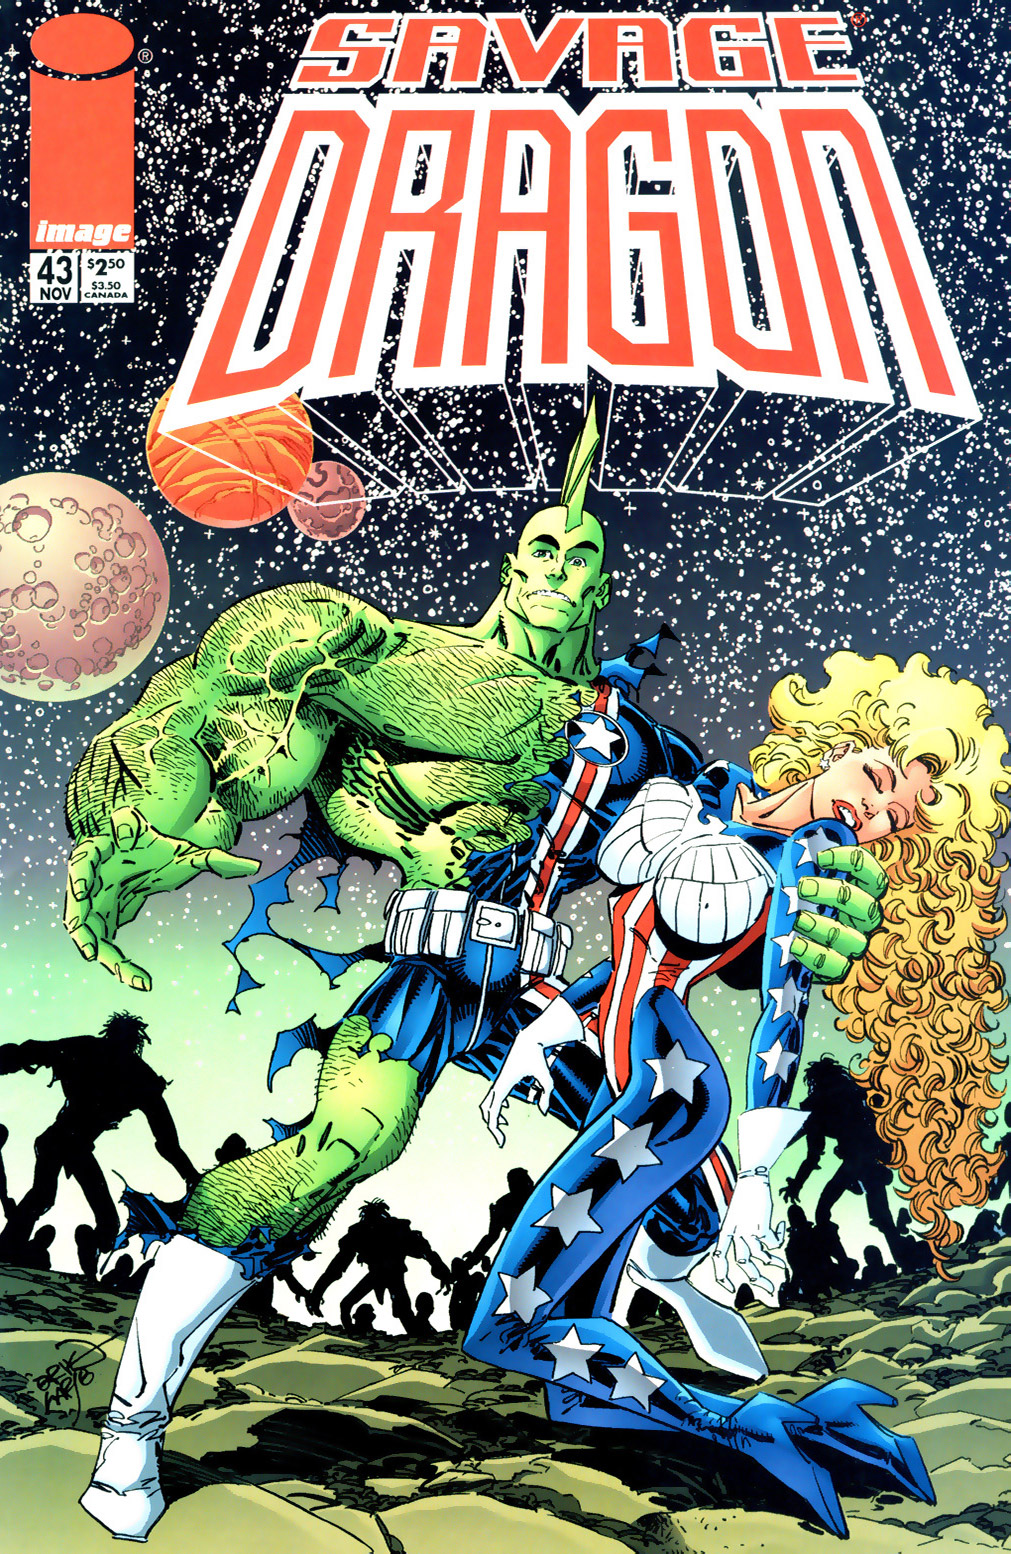 Cover Savage Dragon Vol.2 #43